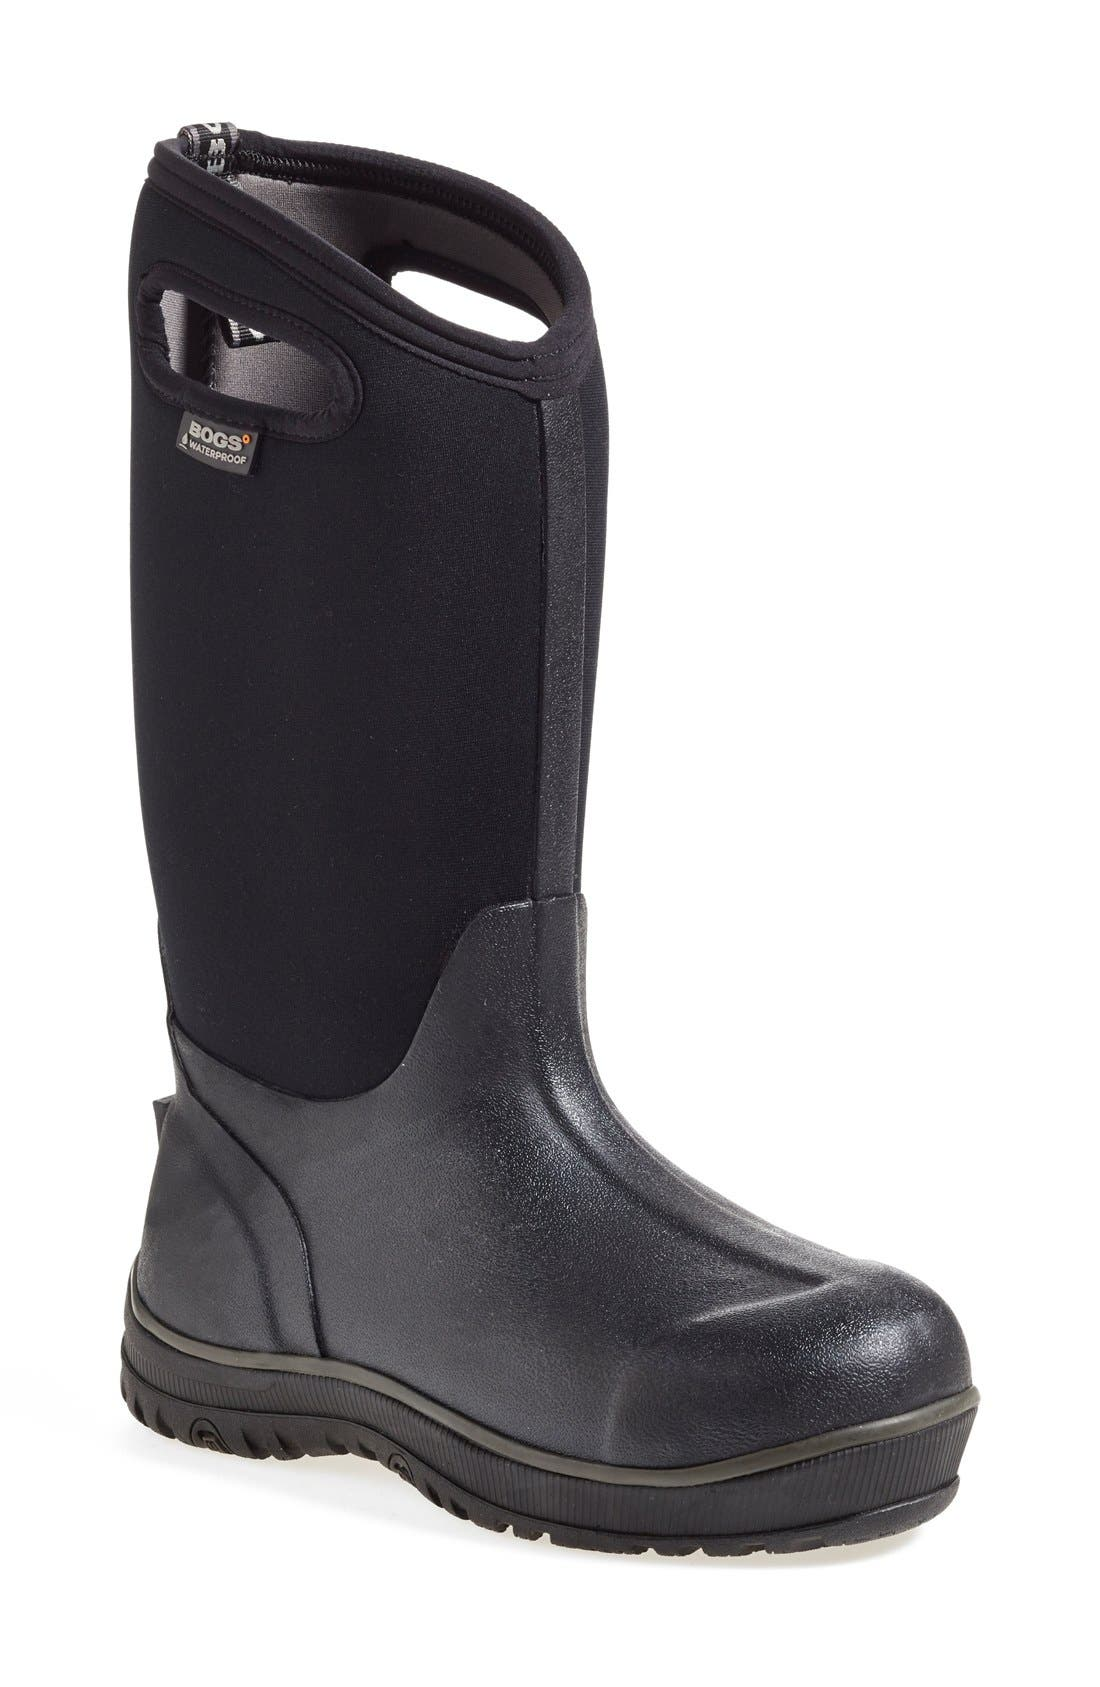 'Classic' Ultra High Waterproof Snow Boot with Cutout Handles,                             Main thumbnail 1, color,                             001